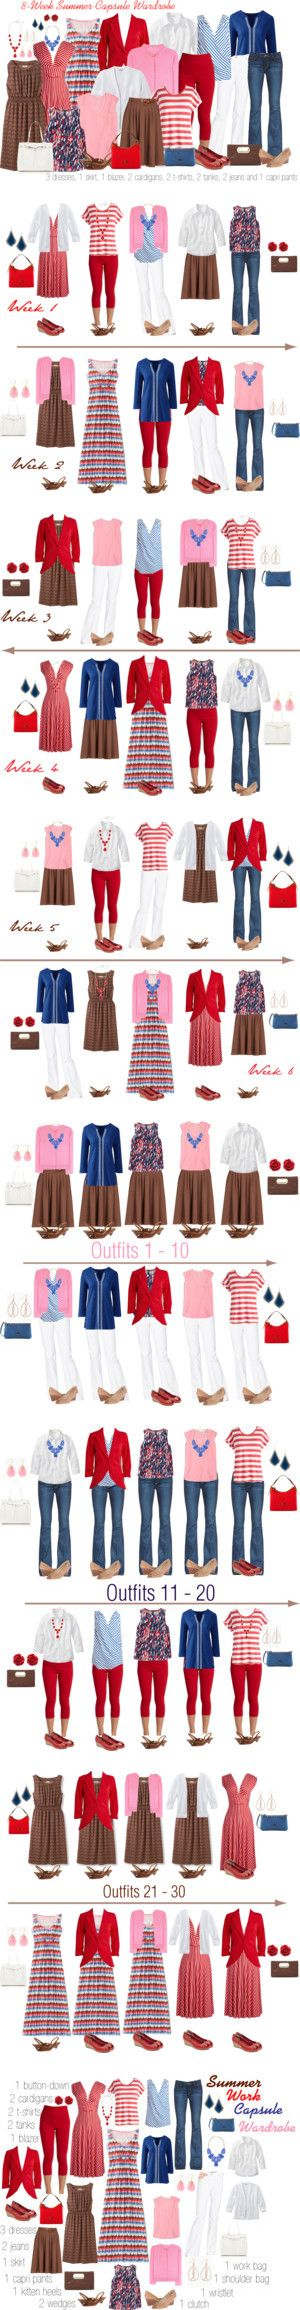 Summer Work Capsule Wardrobe: Pink, Brown, Red & Blue by kristin727 on Polyvore featuring L.L.Bean, Lands' End, Talbots, Paige Denim, Miu Miu, J.Crew, Boden, Dooney & Bourke, Kate Spade and Nine West